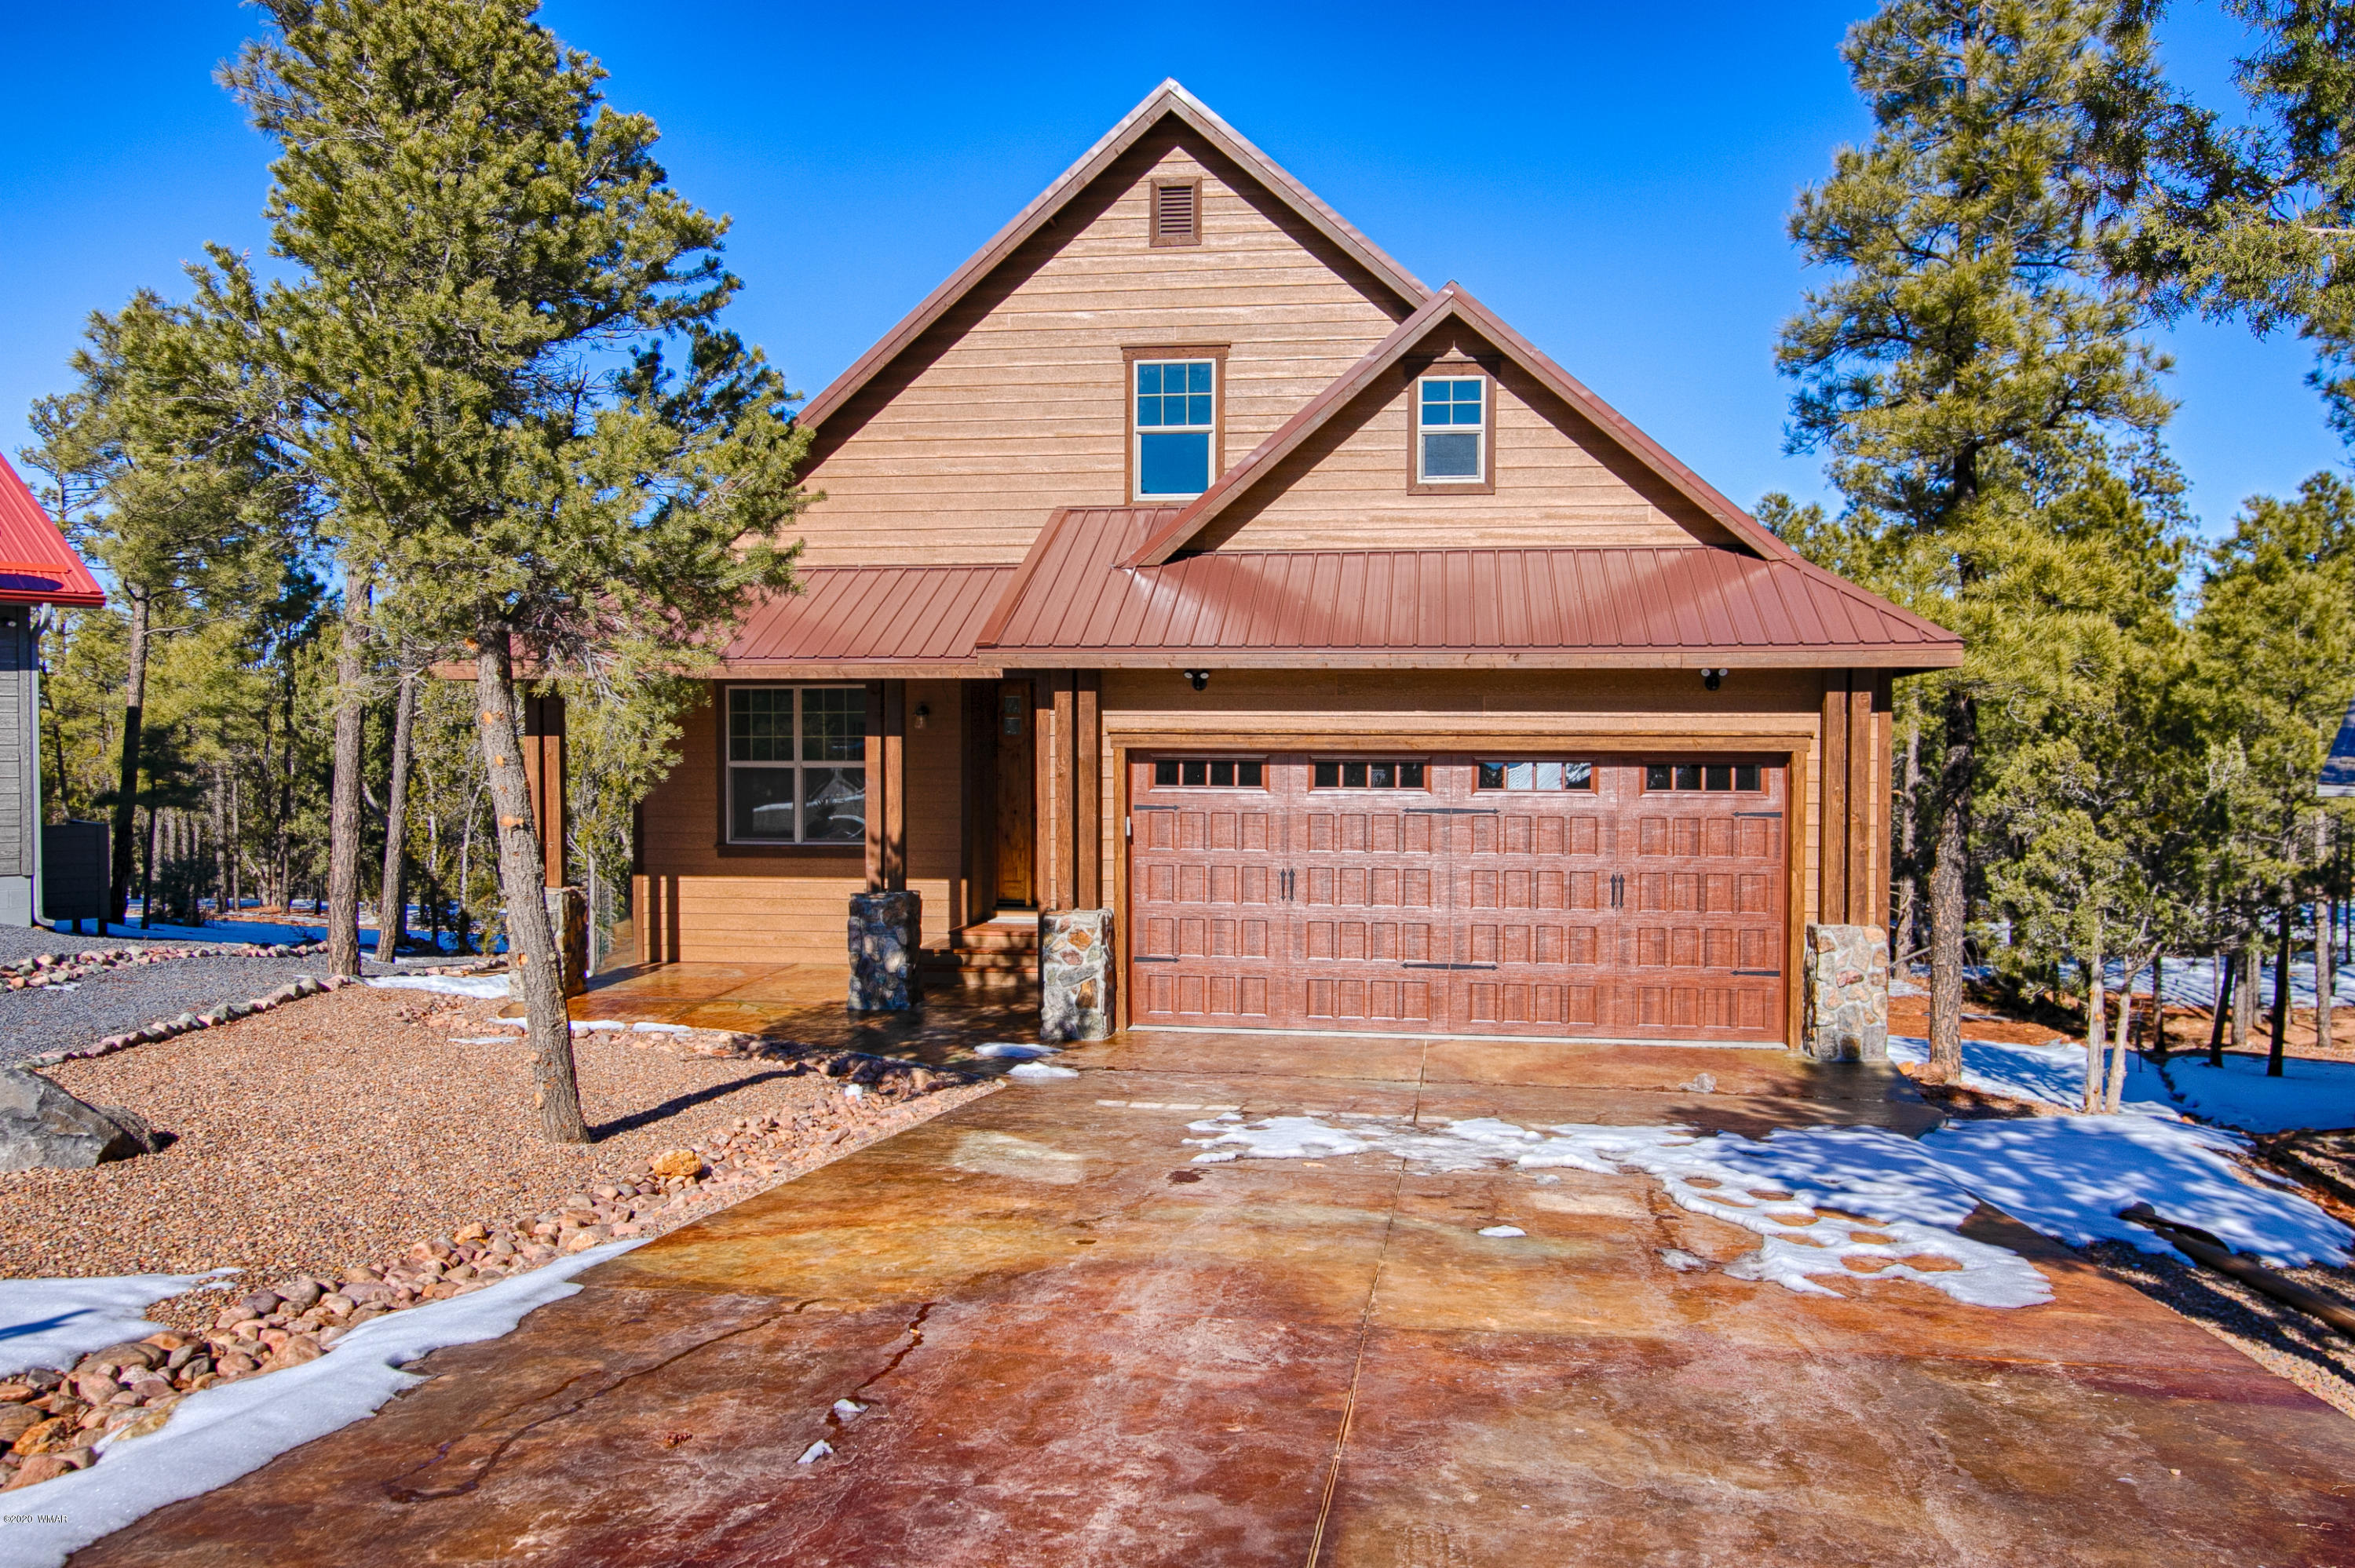 Photo of 4340 N Eagle View Loop, Show Low, AZ 85901